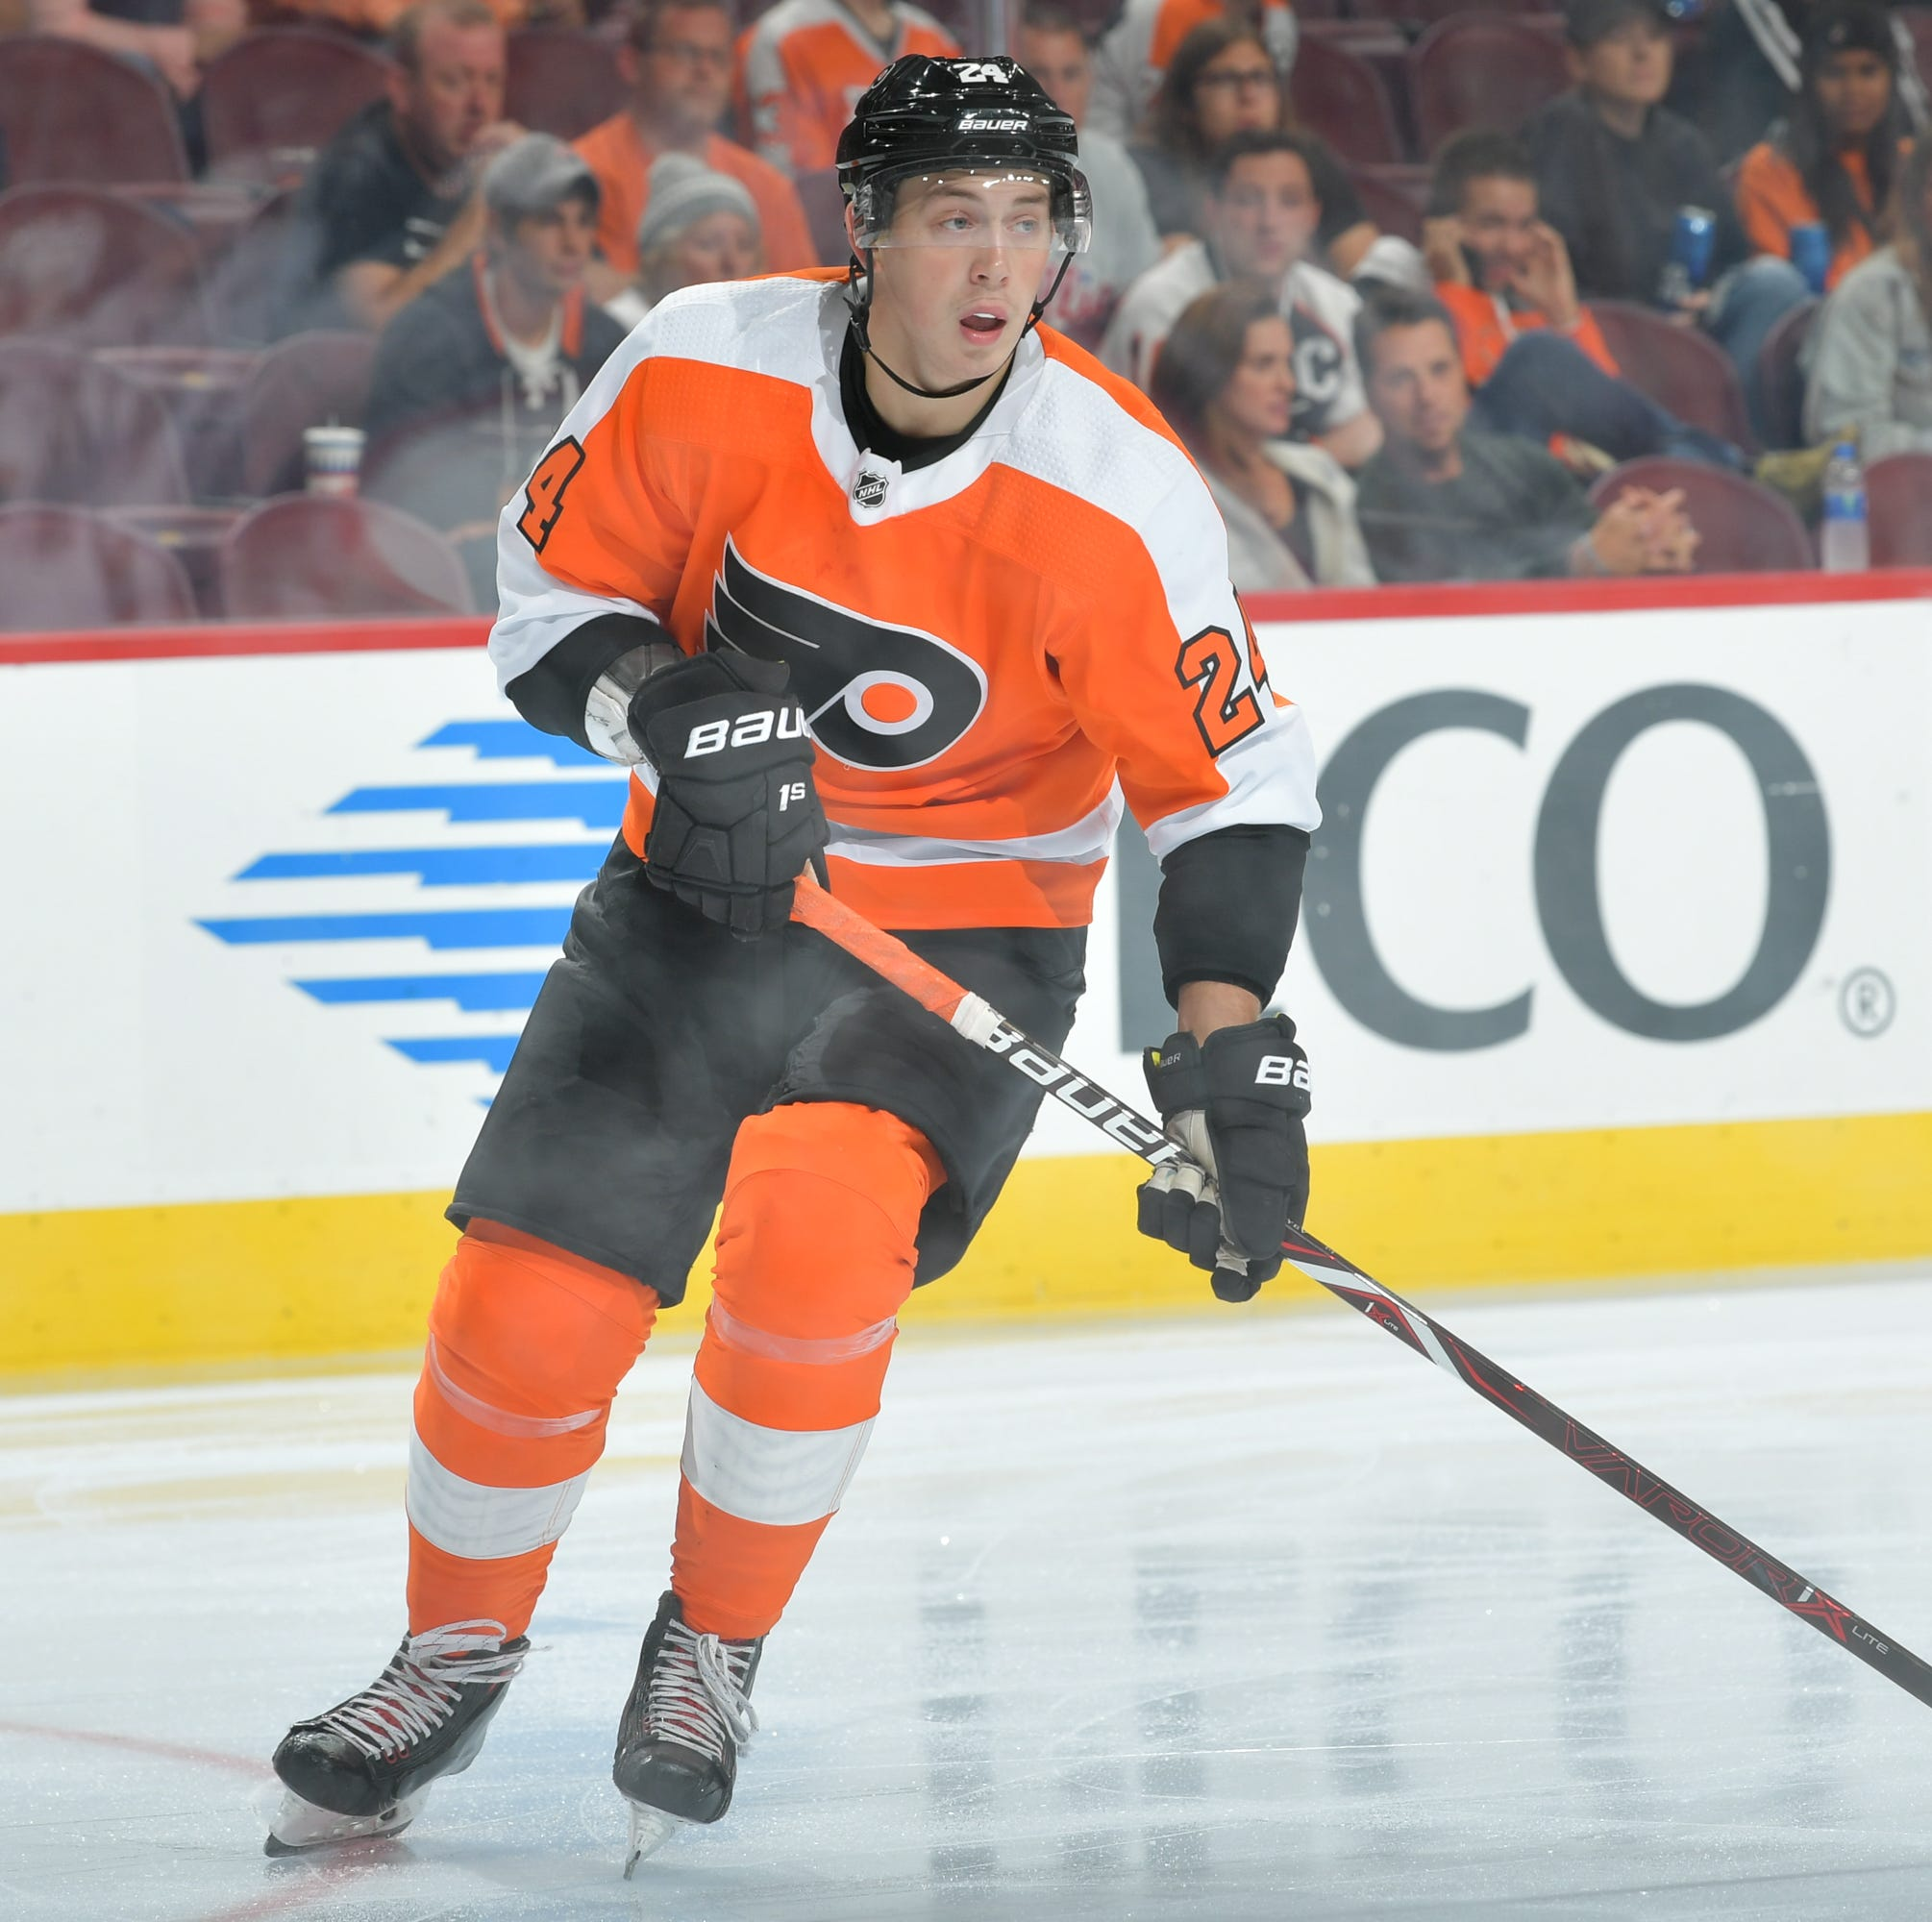 Flyers' Mikhail Vorobyev seeing NHL development doesn't happen easily